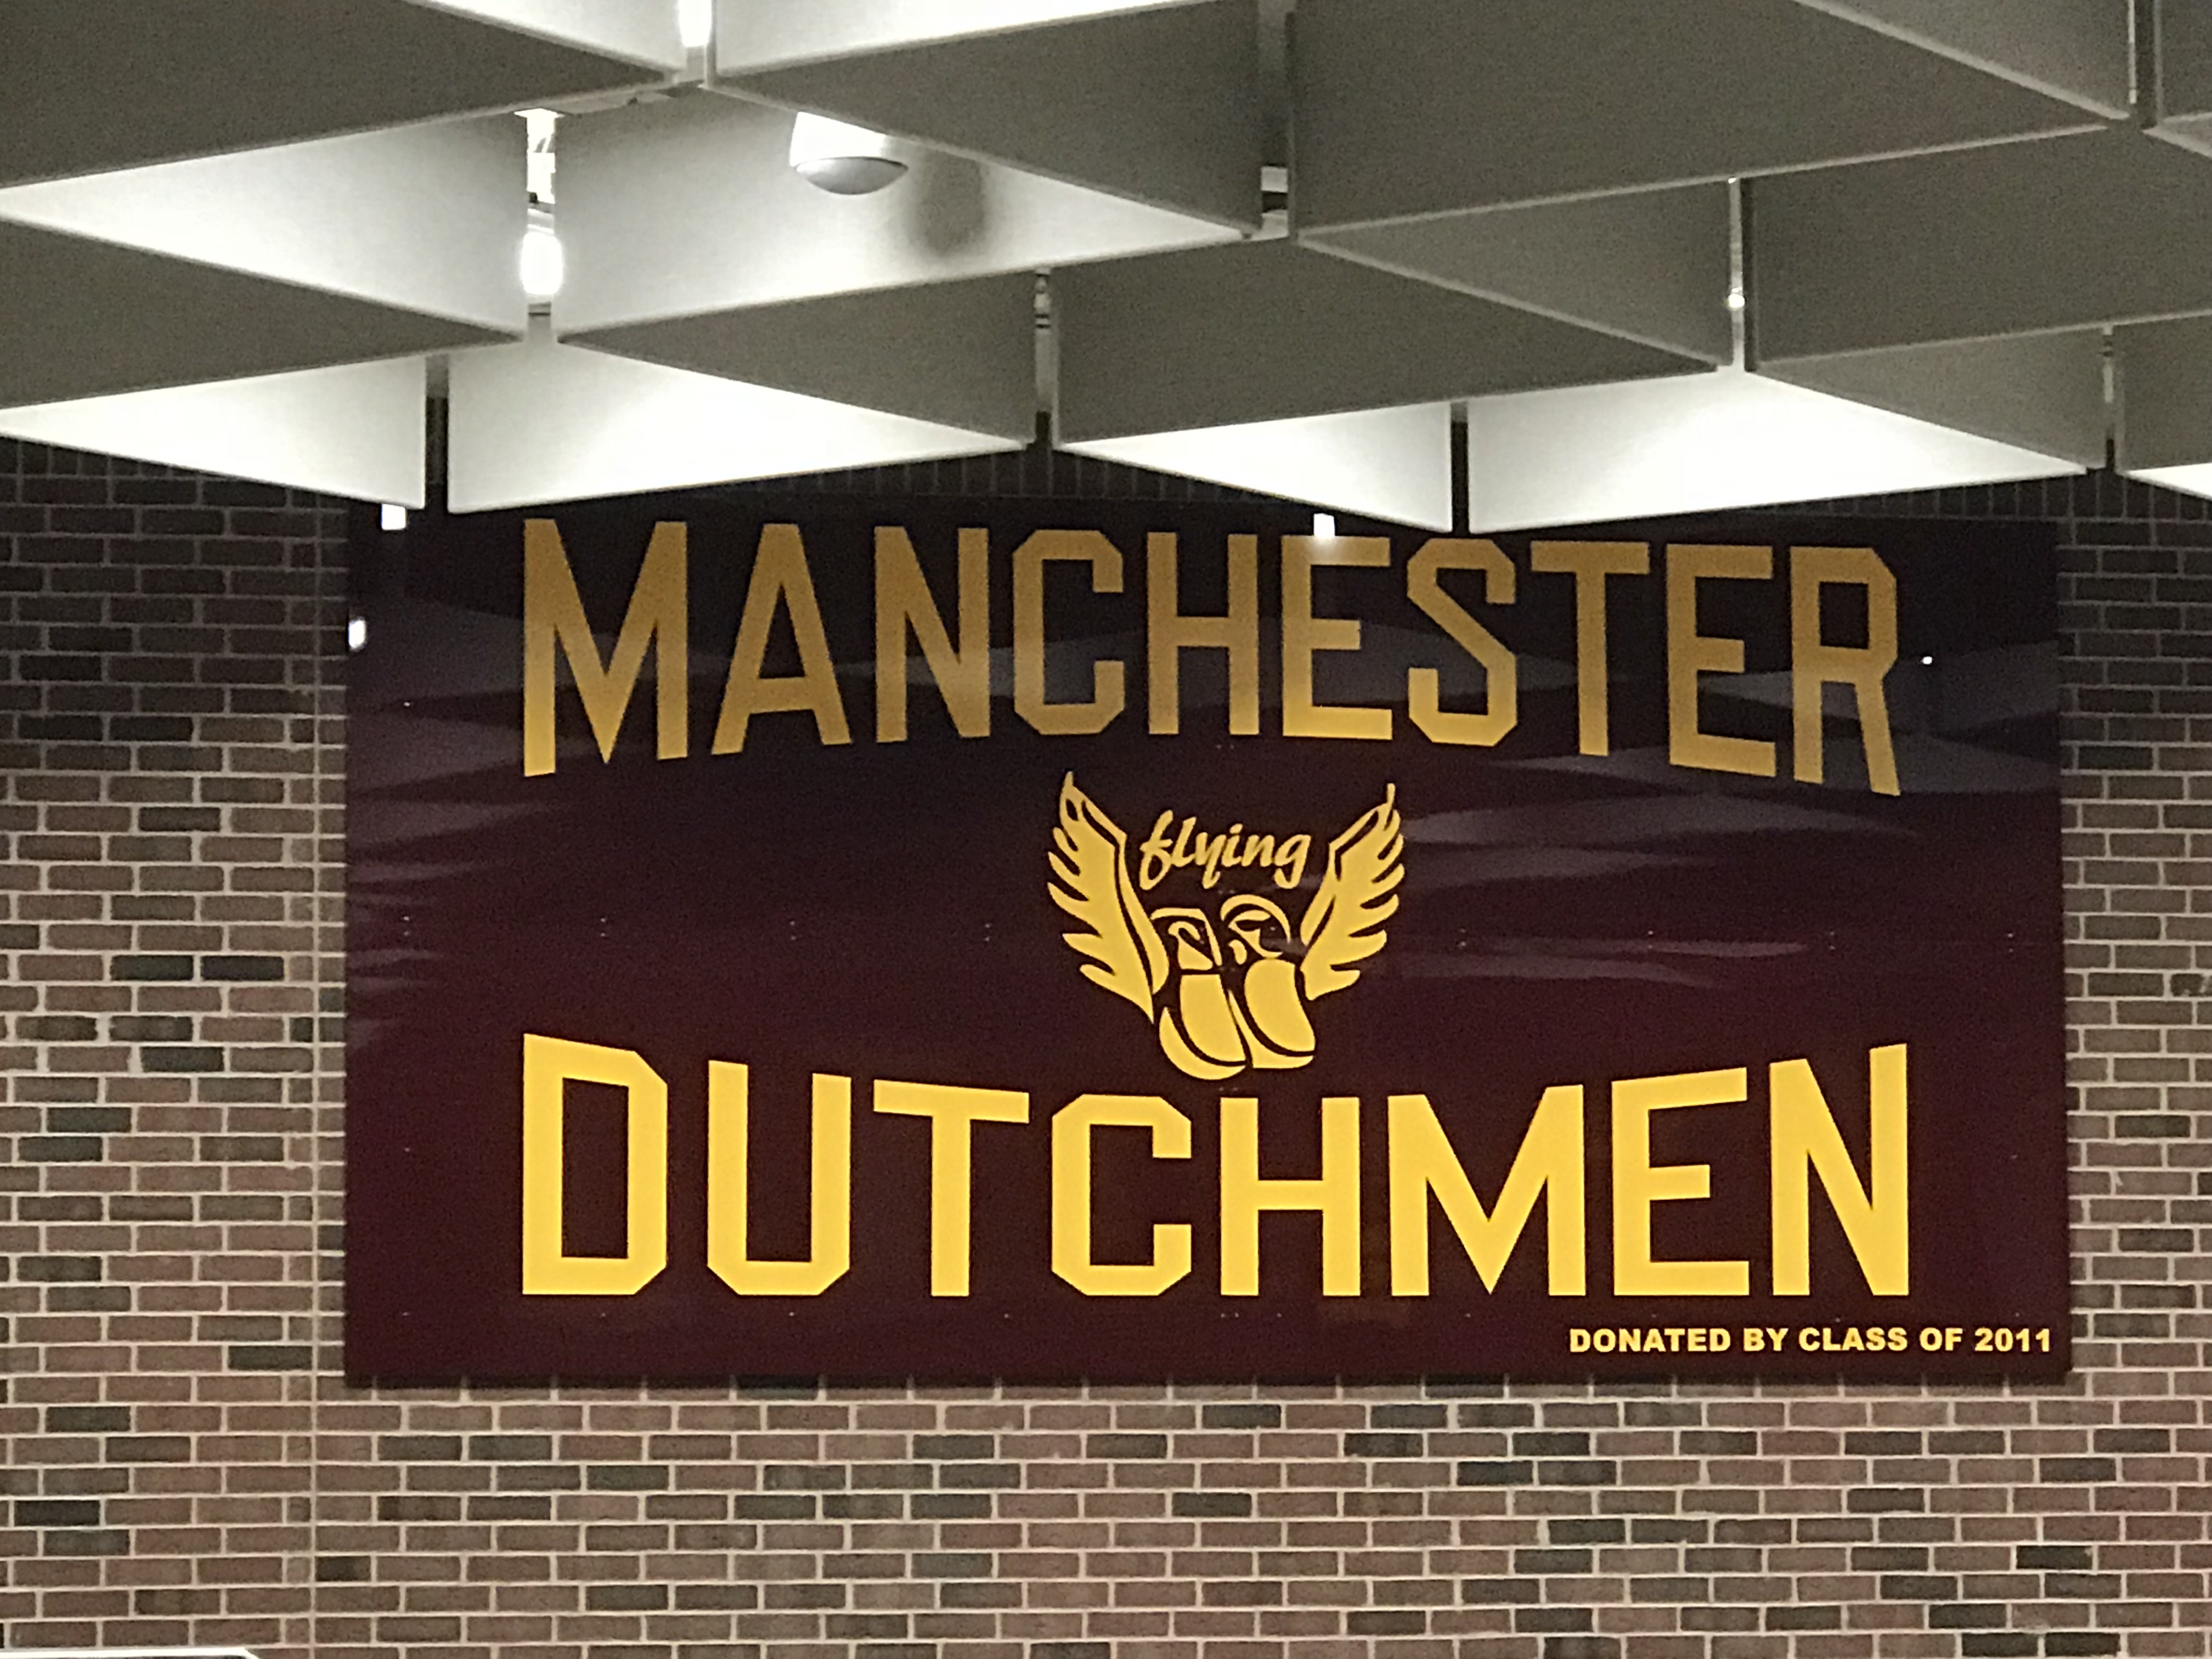 A banner reading Manchester Flying Dutchmen, donated by the class of 2011